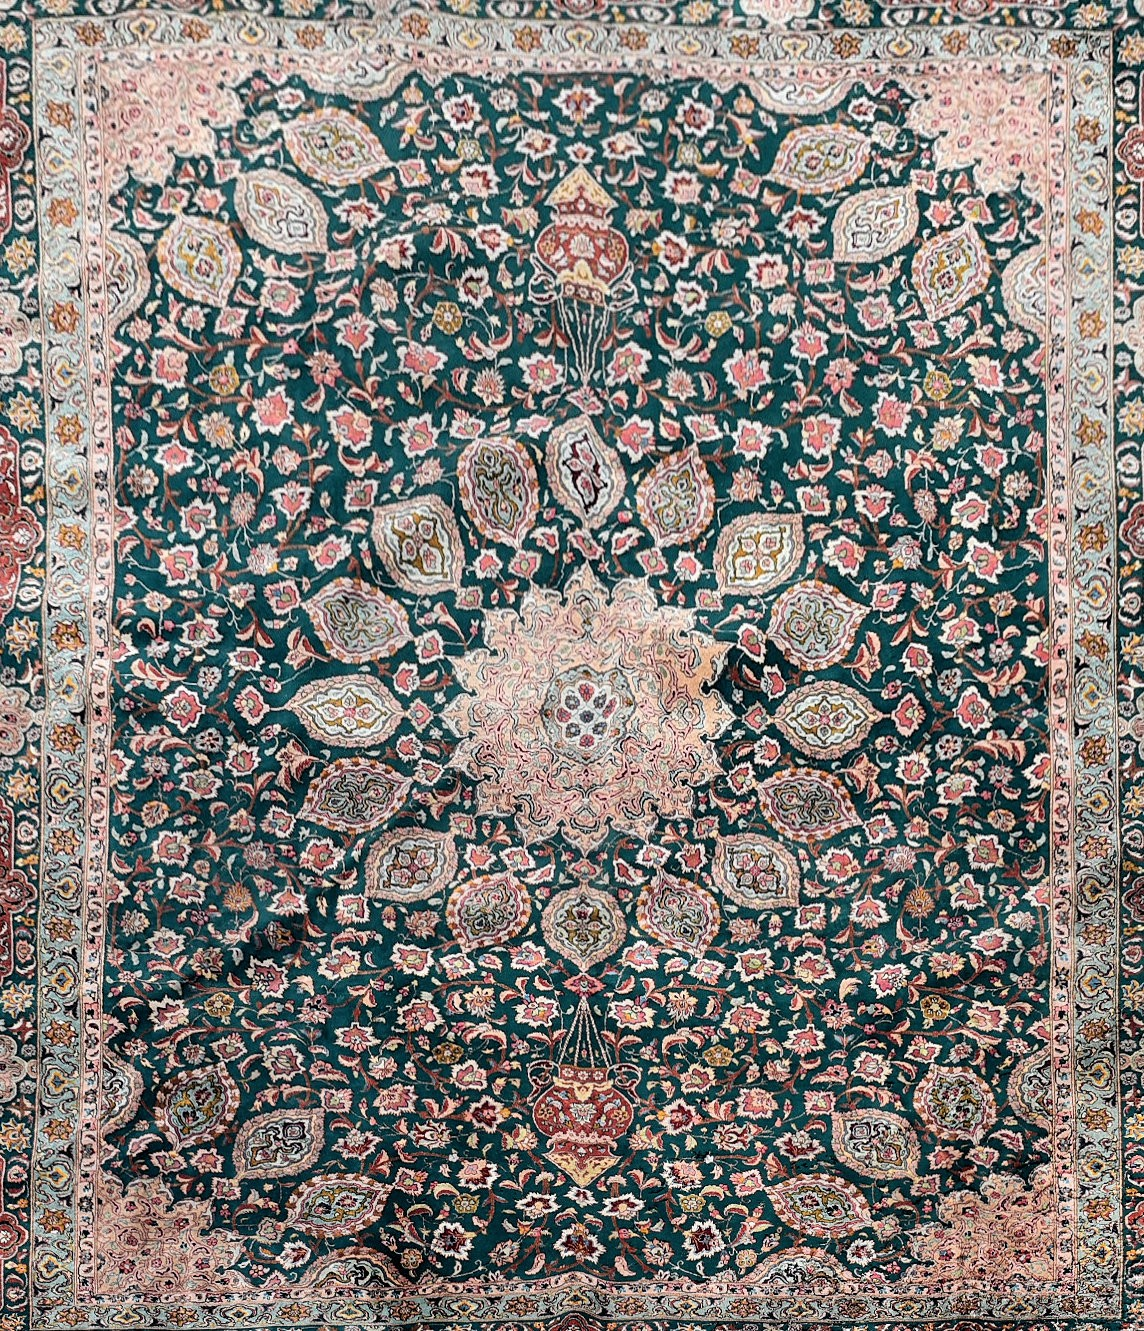 A fine Persian Tabriz carpet with central floral medallion and meandering flowerhead motifs across - Image 2 of 4